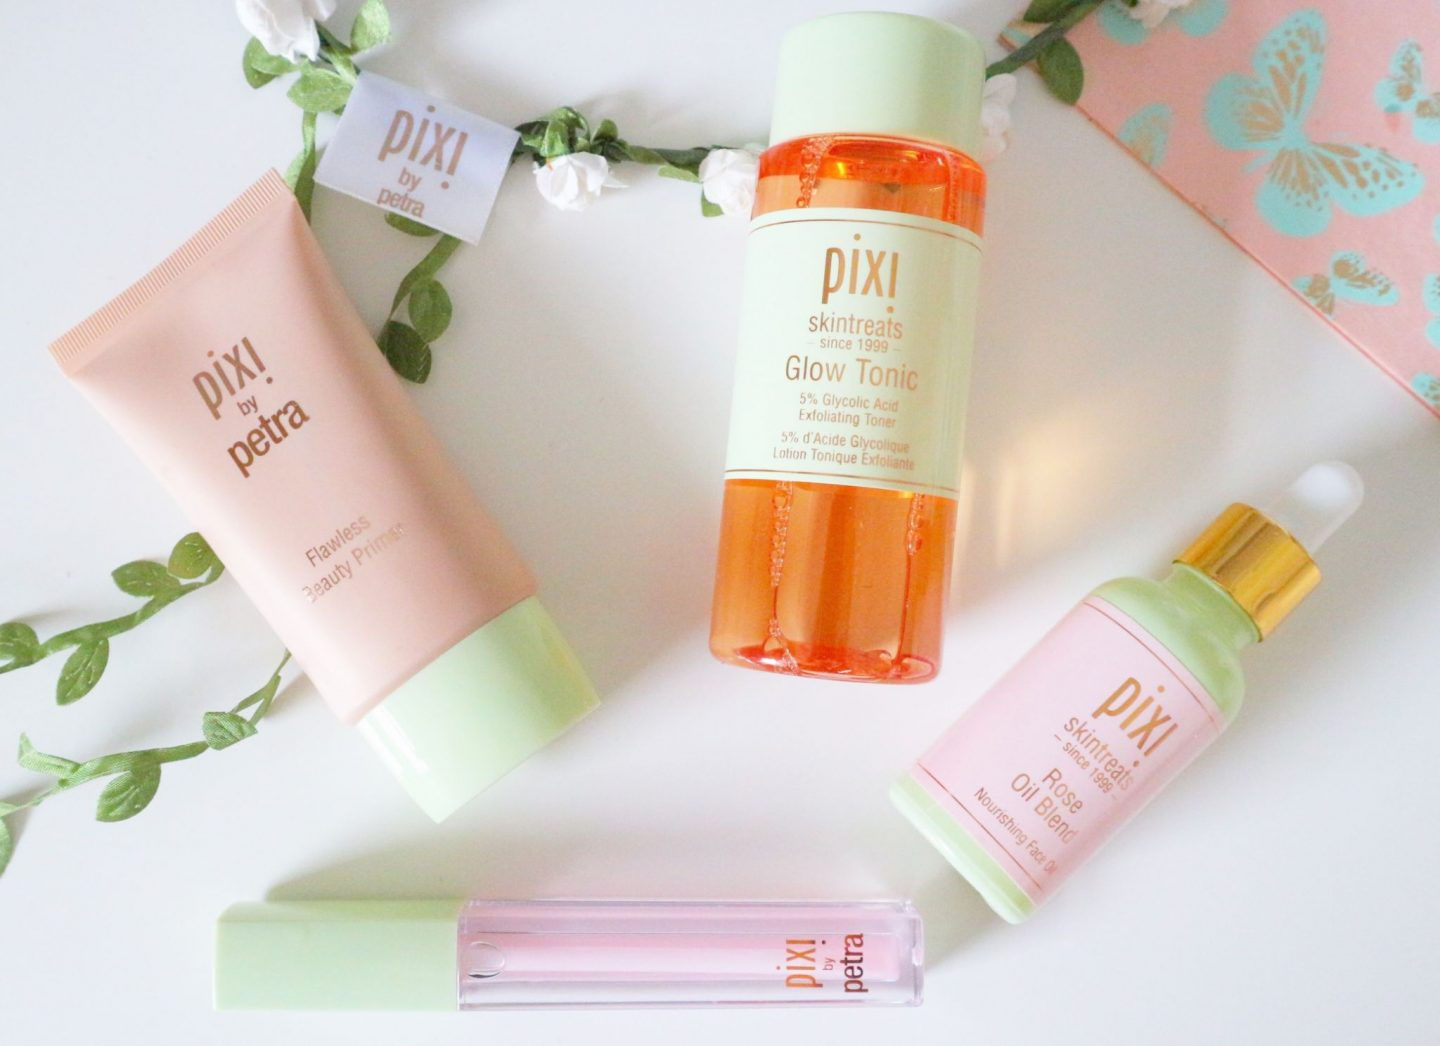 Pixi Beauty Skincare Review